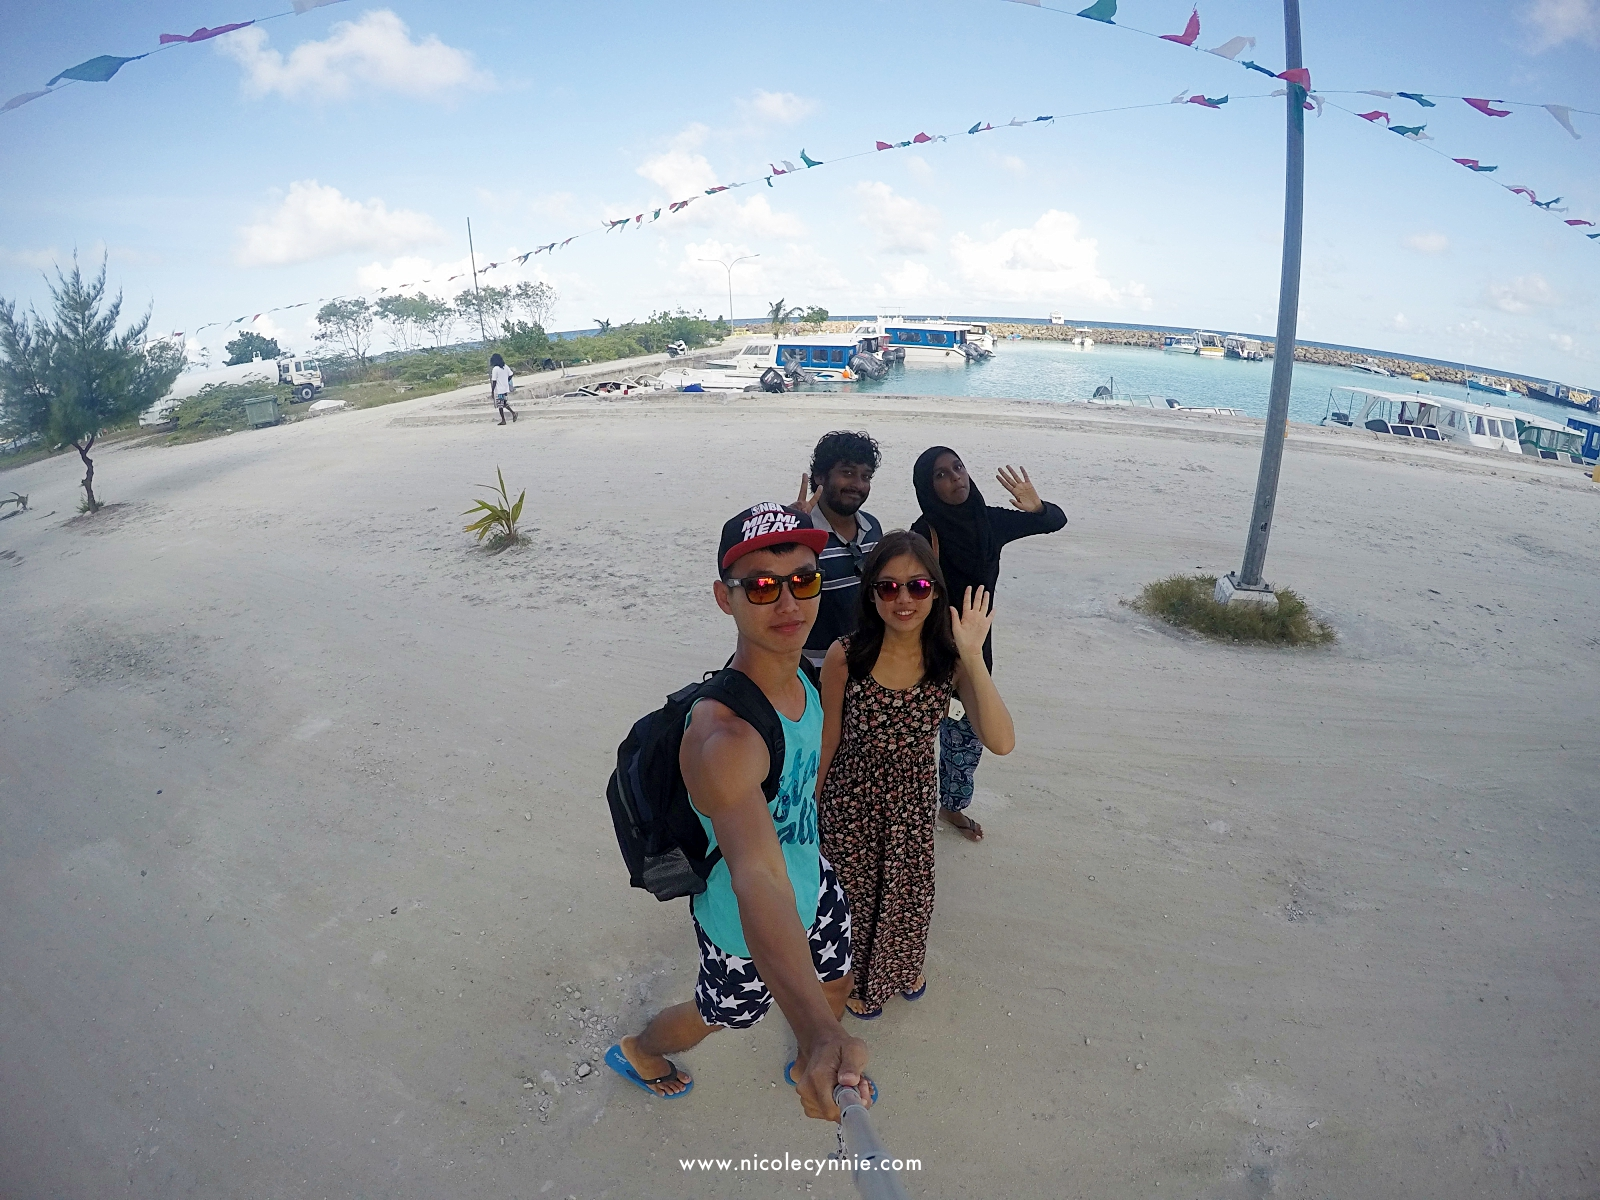 Nicole Cynnie | Visiting Hulhumale Maldives 5